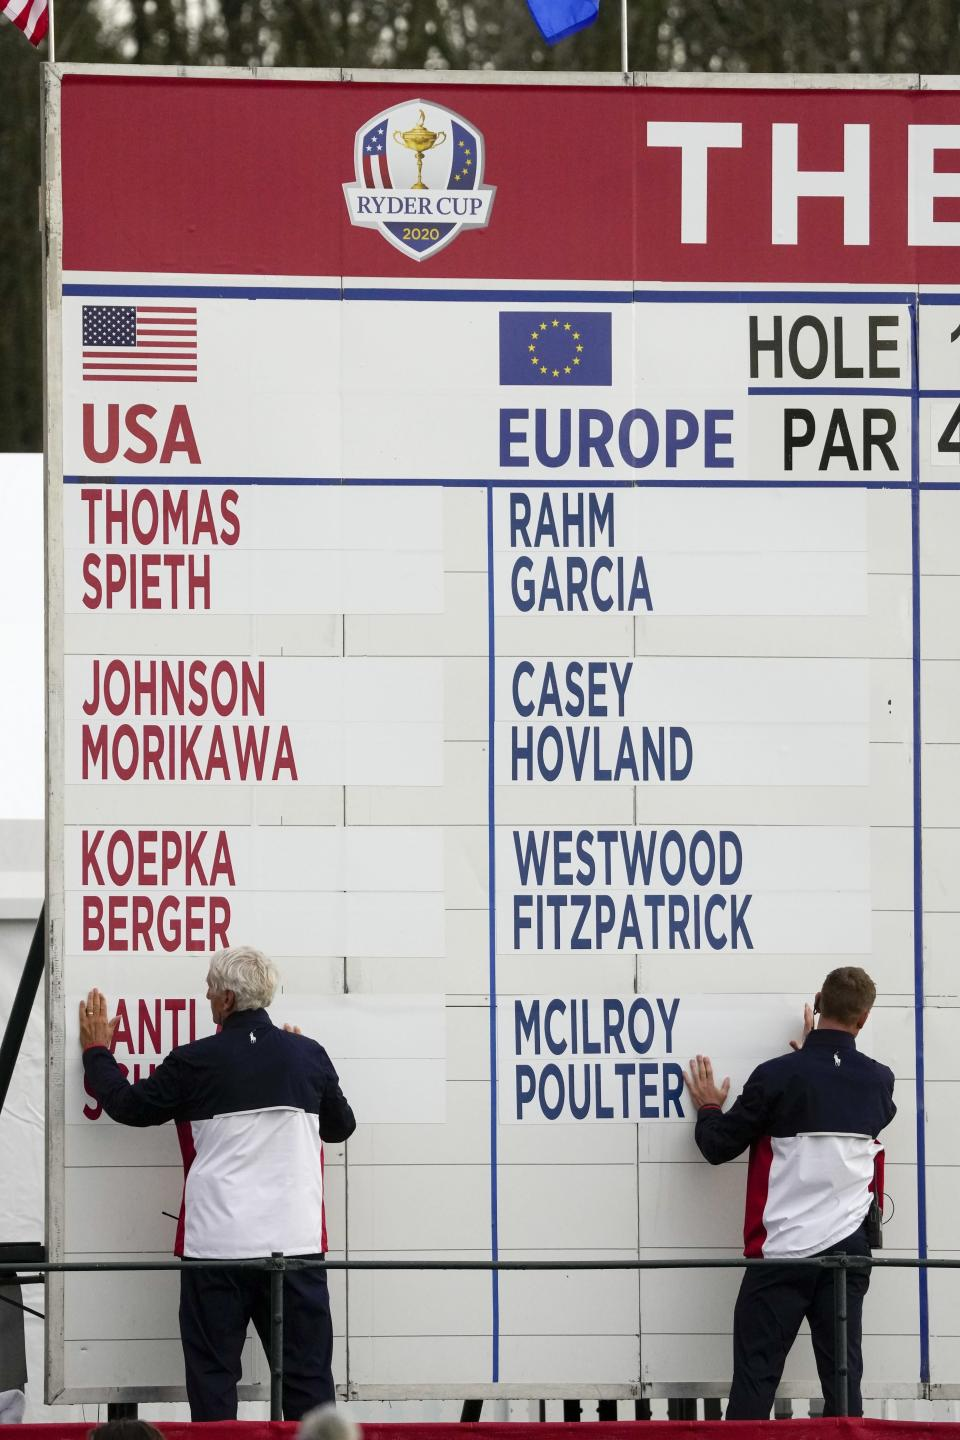 Friday's pairings are displayed during the opening ceremony for the Ryder Cup at the Whistling Straits Golf Course Thursday, Sept. 23, 2021, in Sheboygan, Wis. (AP Photo/Charlie Neibergall)